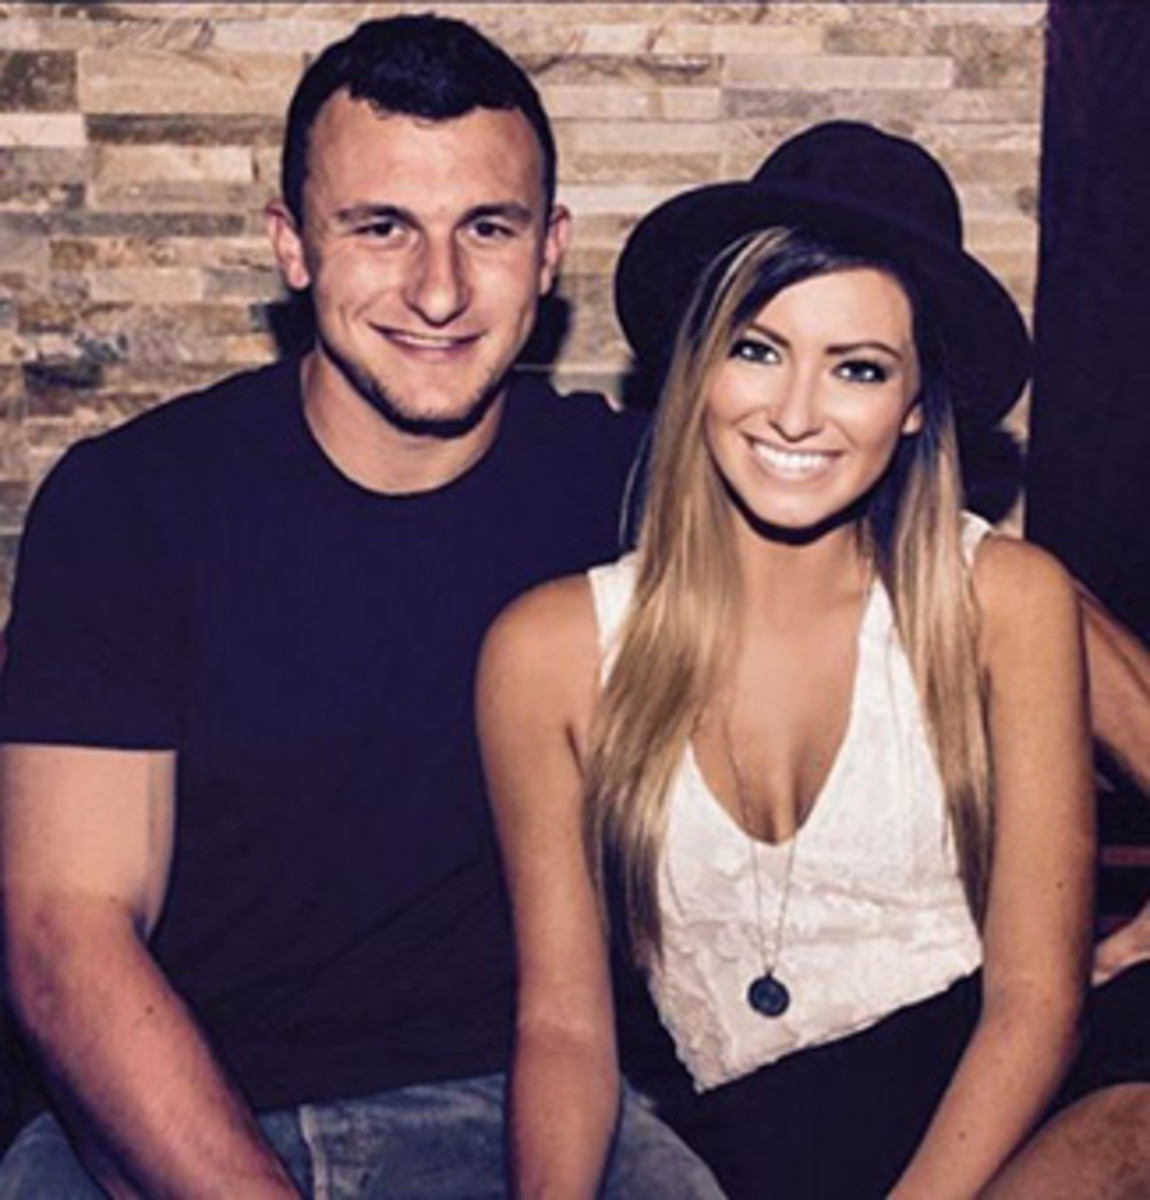 Manziel and now-ex-girlfriend Colleen Crowley, who accused him of assault in January.